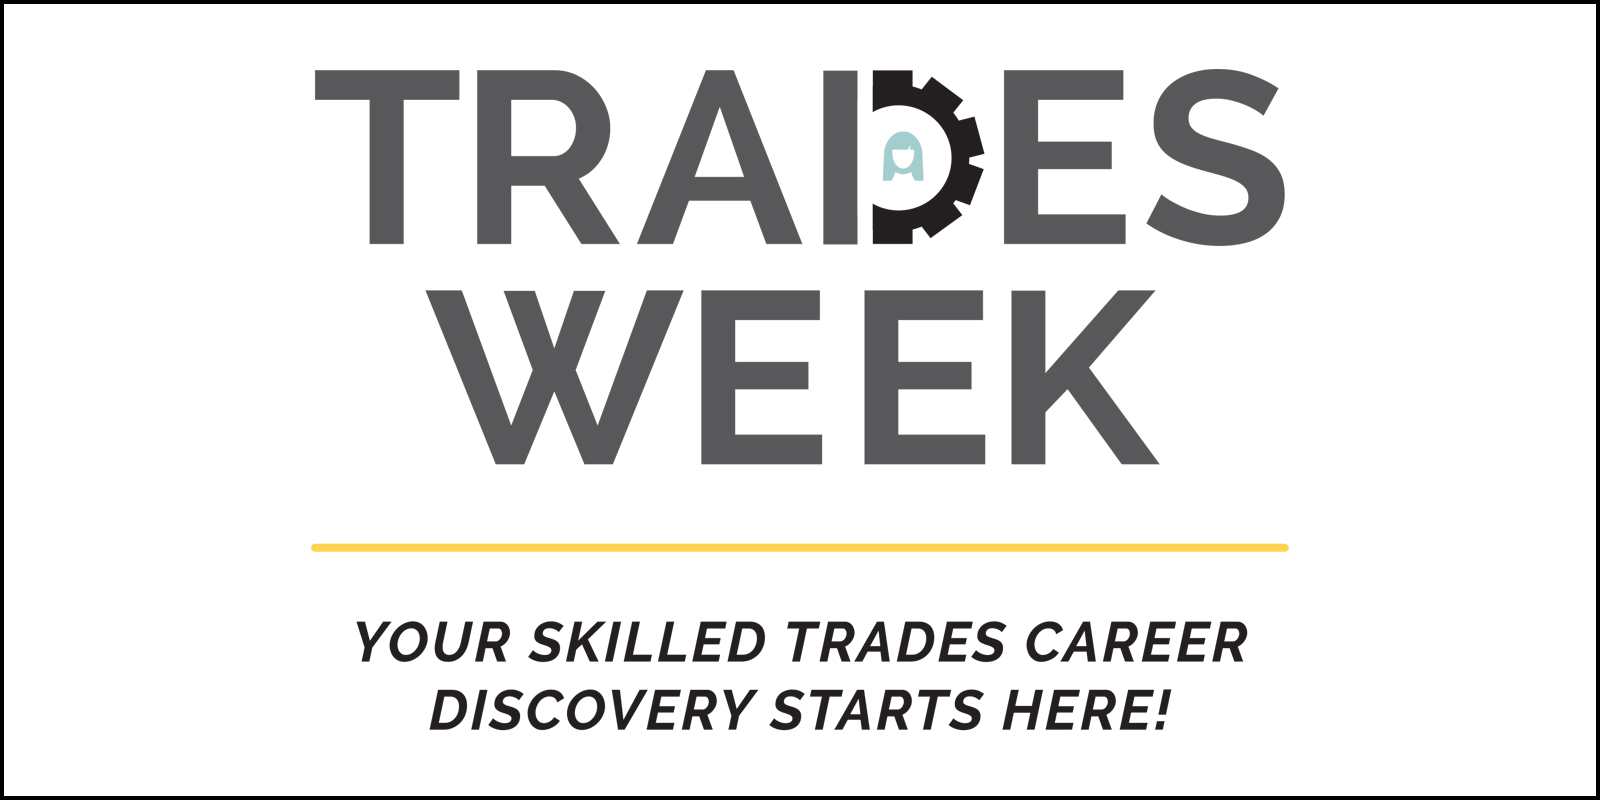 Build A Dream Trades Week - Your Skilled Trades Career Discovery Starts Here